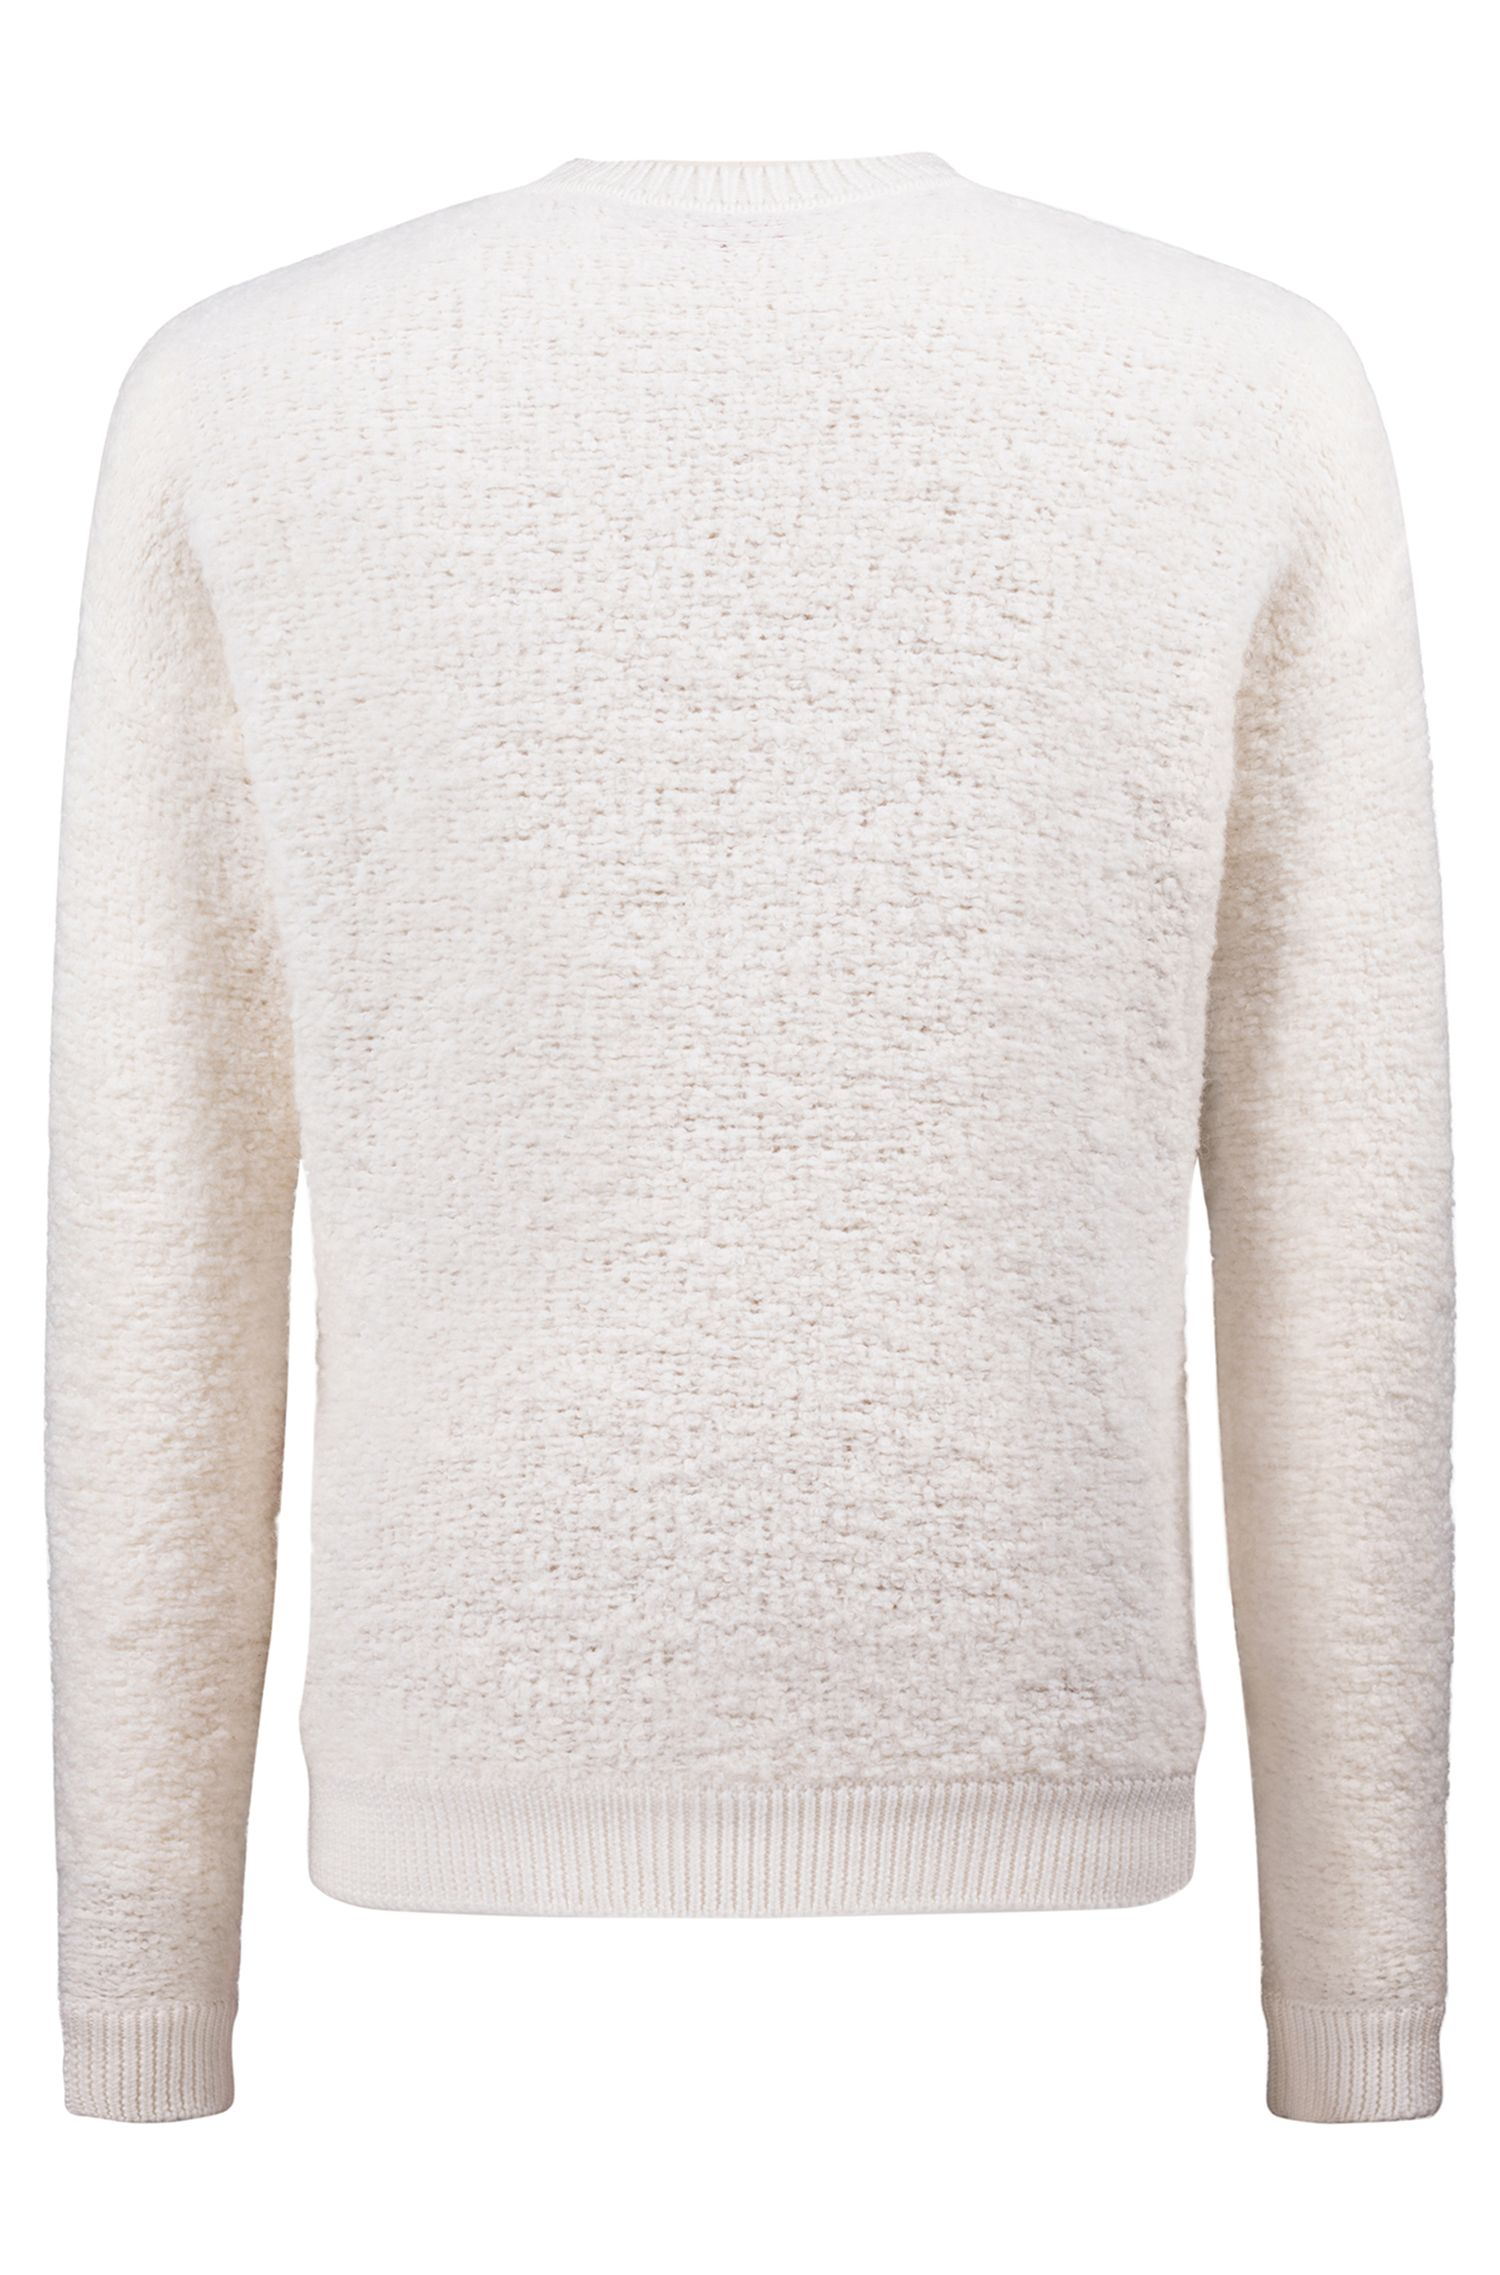 Oversized shearling-effect bouclé sweater with chunky ribbing, White